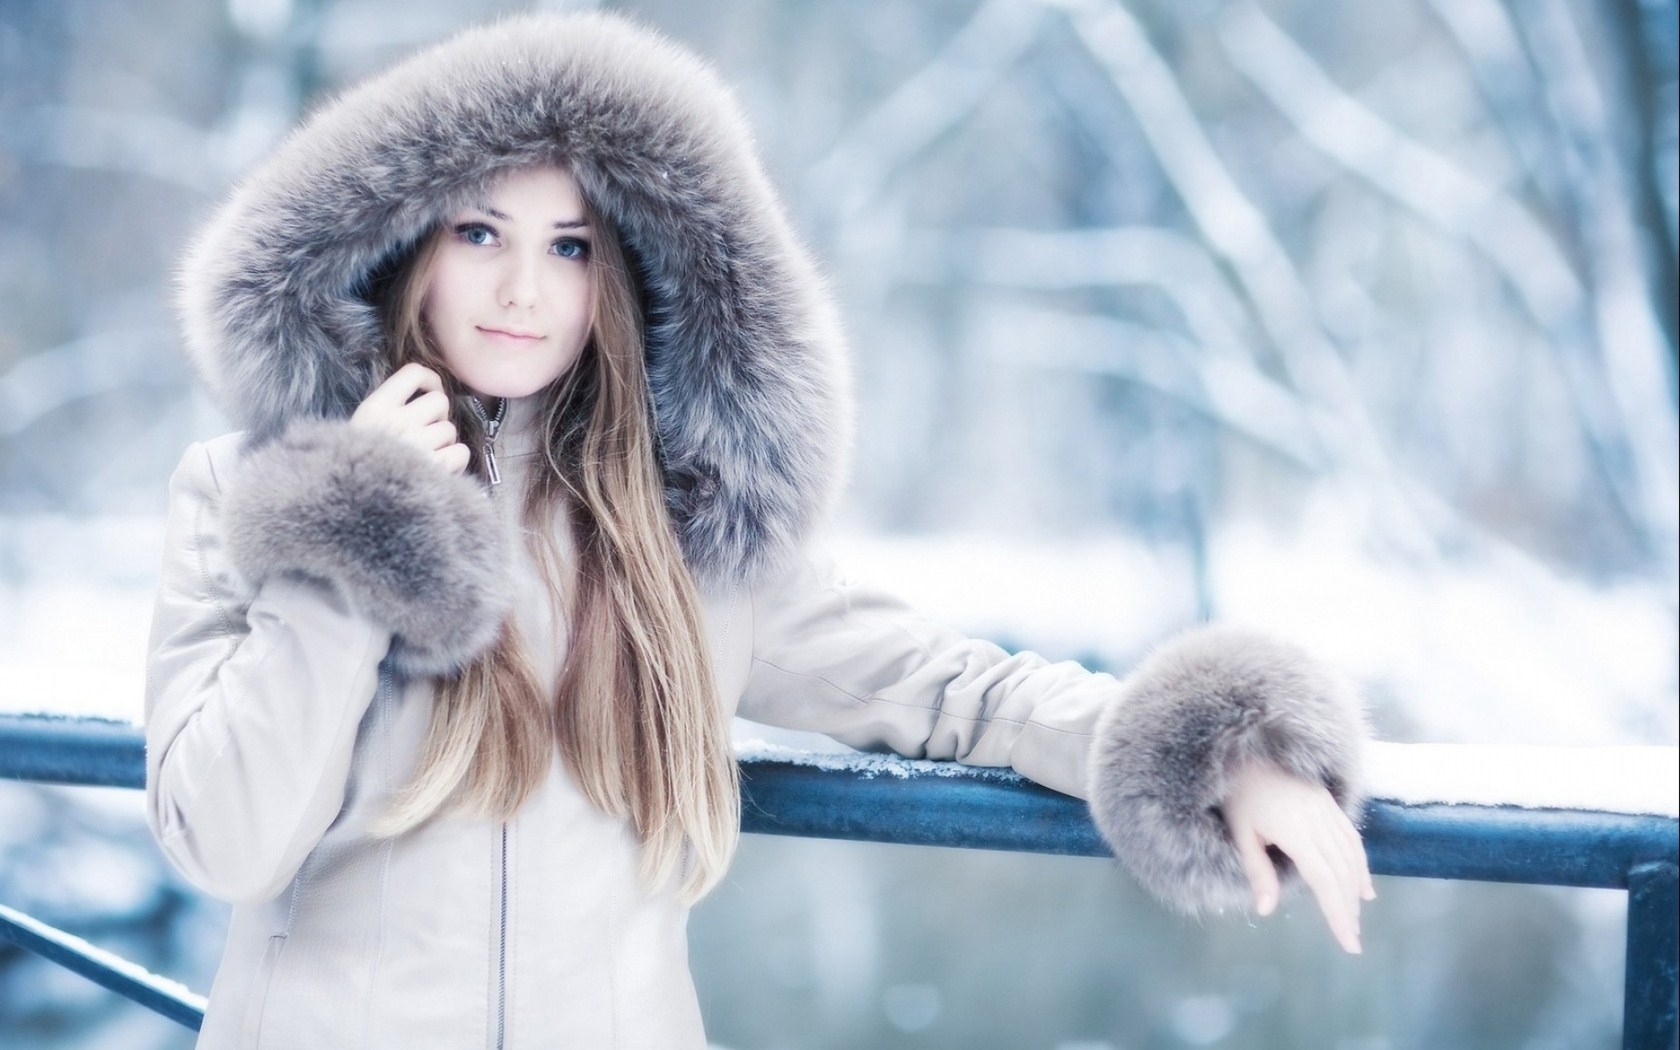 Blonde Russian Girl Winter Photo HD Wallpaper